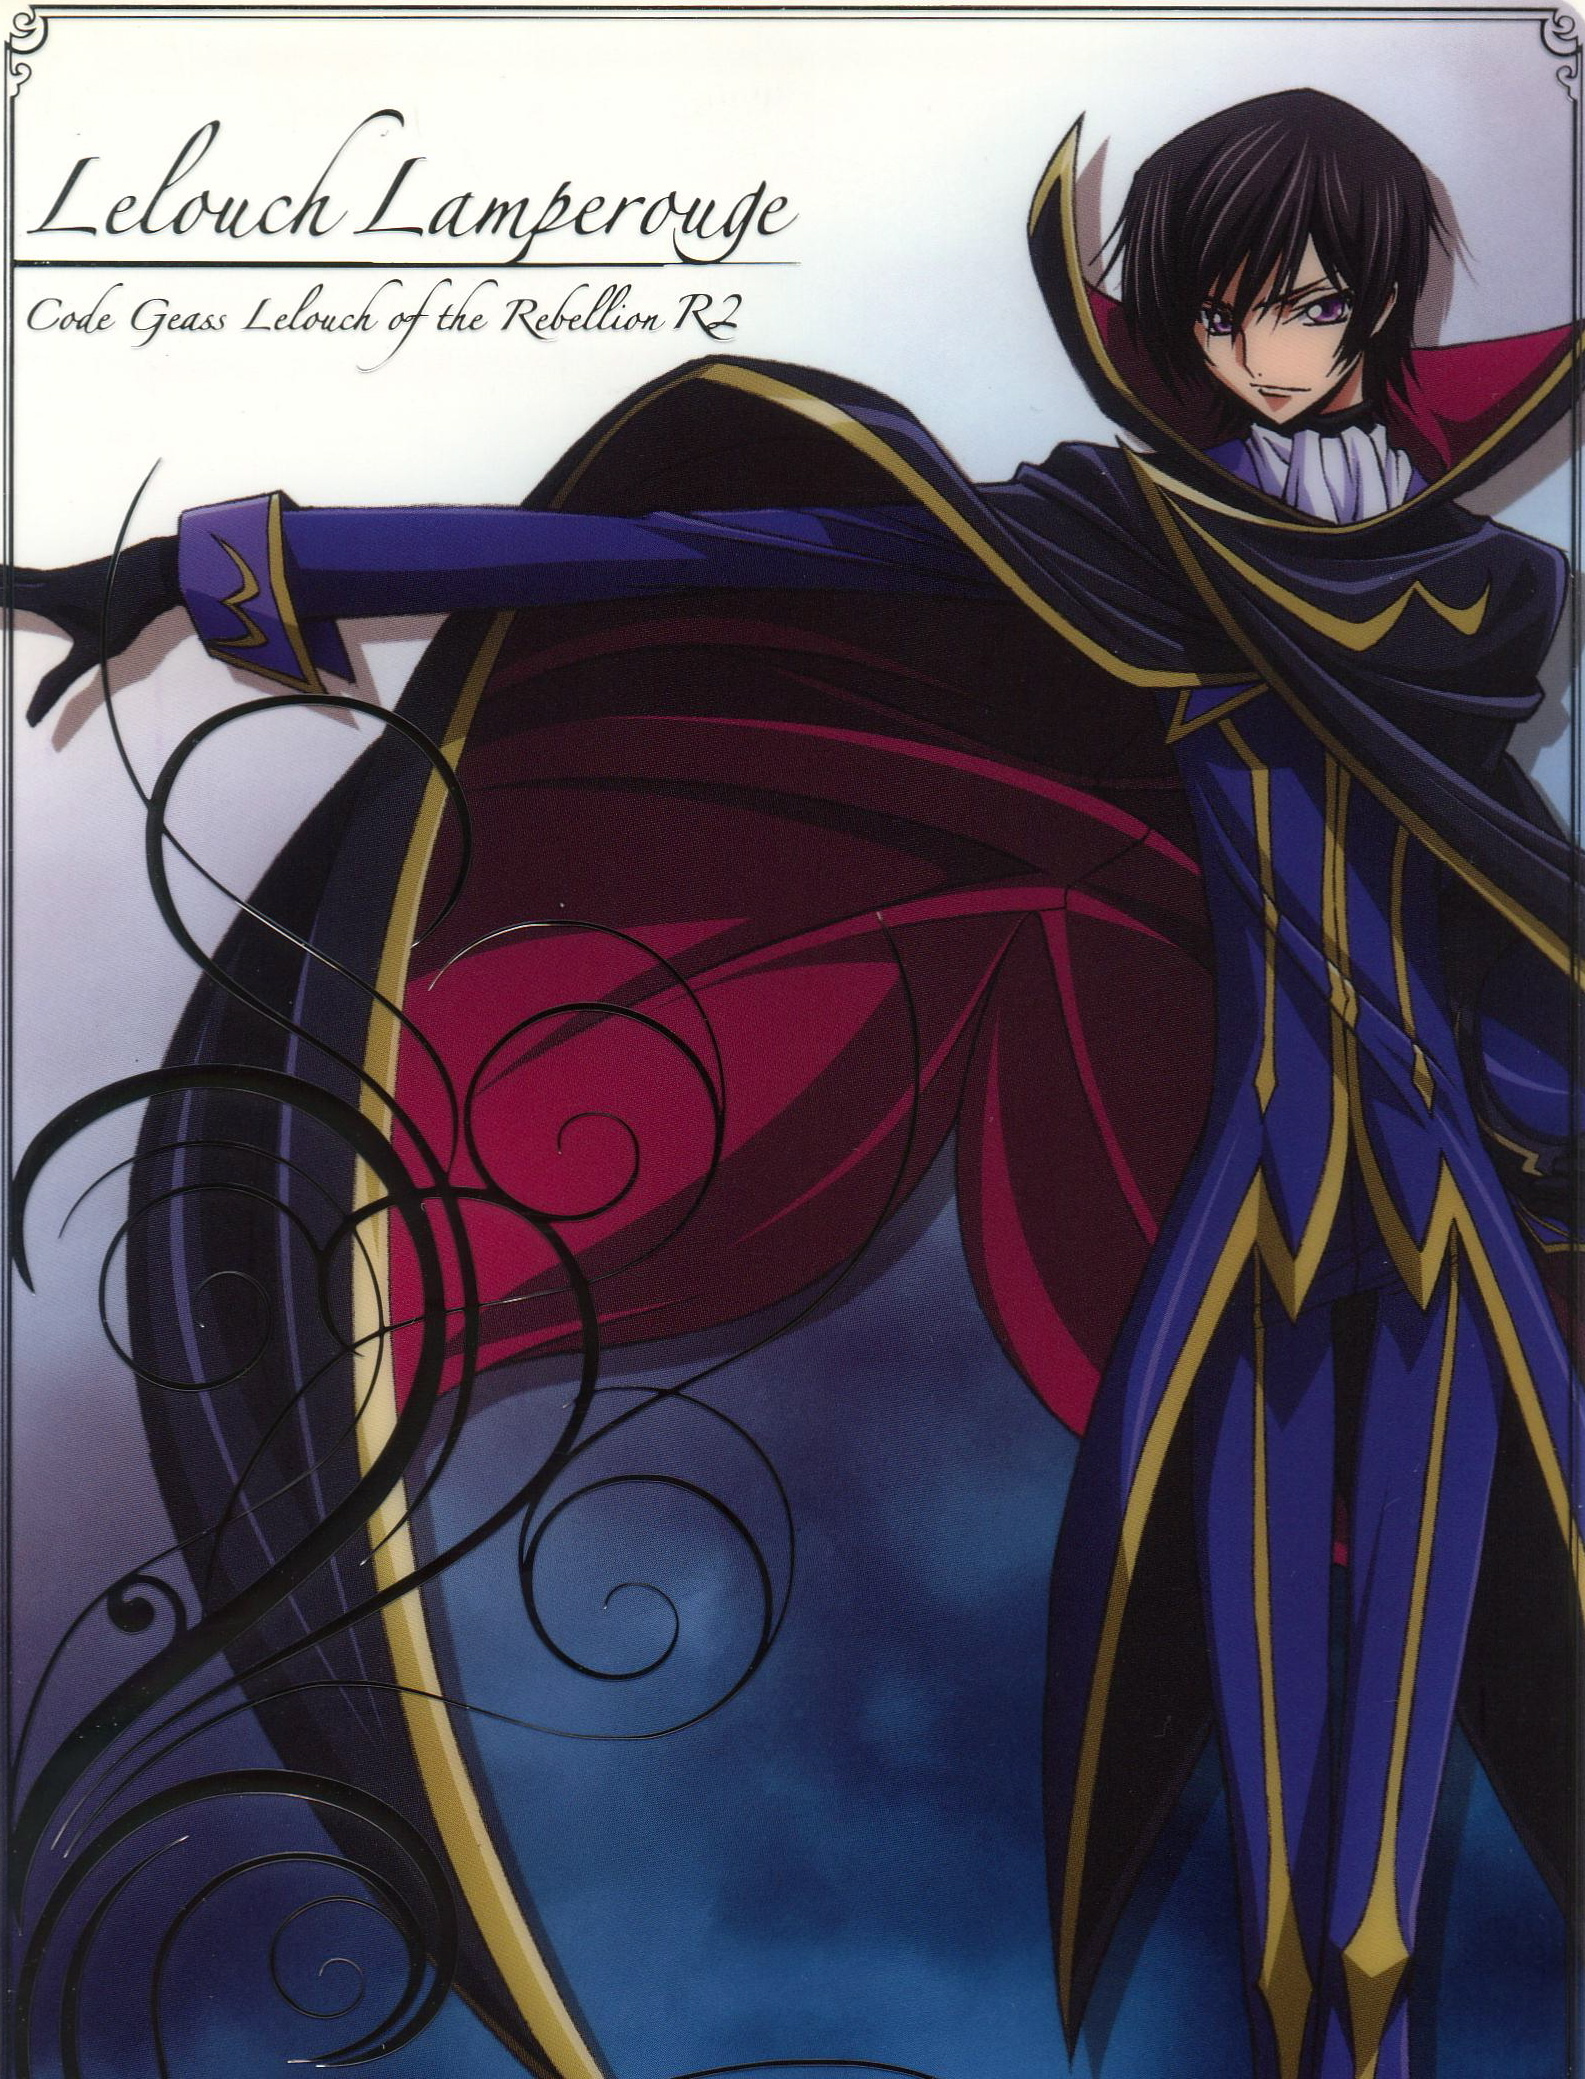 lelouch vi britannias comment on cruelty and unjustness in the anime code geass The code of knighthood essay examples lelouch vi britannia's comment on cruelty and unjustness in the anime code geass.